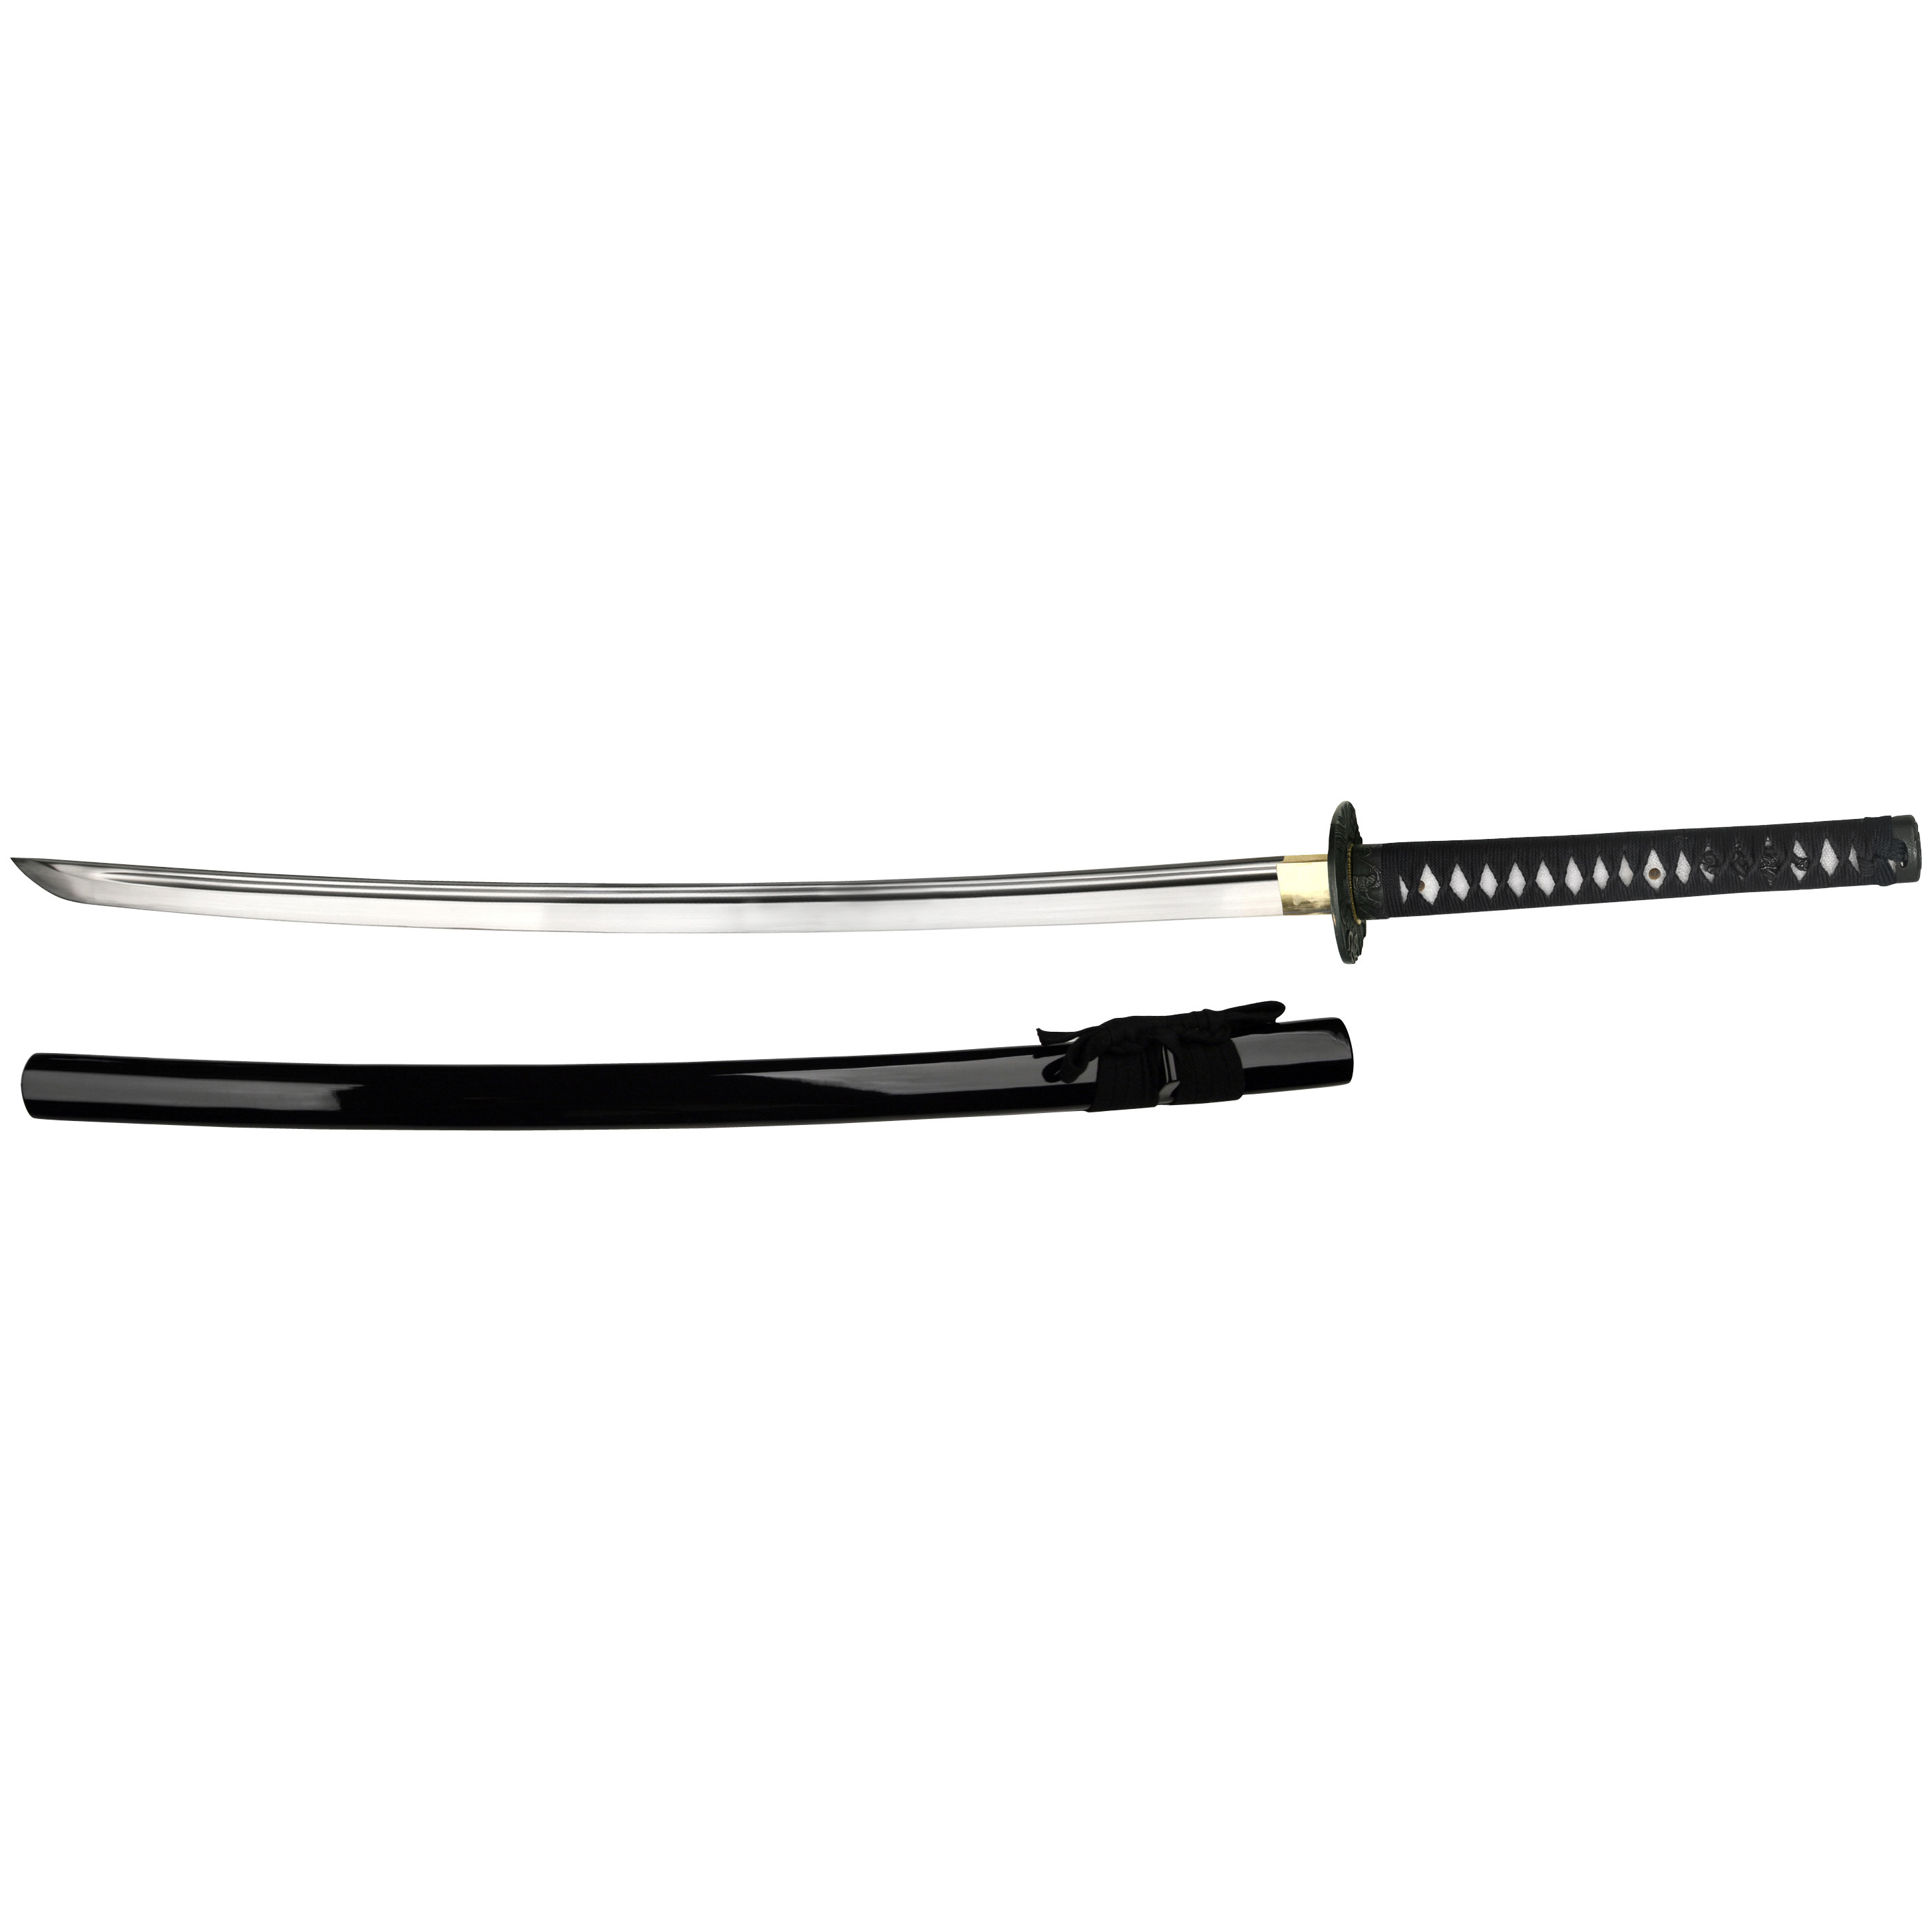 "Self Assemble Katana. Customize your own samurai sword! Create a sword worthy of the noble warrior! Your Self Assemble Katana Kit includes:40"" Overall 28"" Hand-forged 1045 carbon steel blade with blood groove 7mm-thickness full-tang blade Cotton-wrapped handle with ray skin 2 Tsuba Cotton sword bag Cleaning kit. State Color, as available in the Shopping Cart. - $94.99"